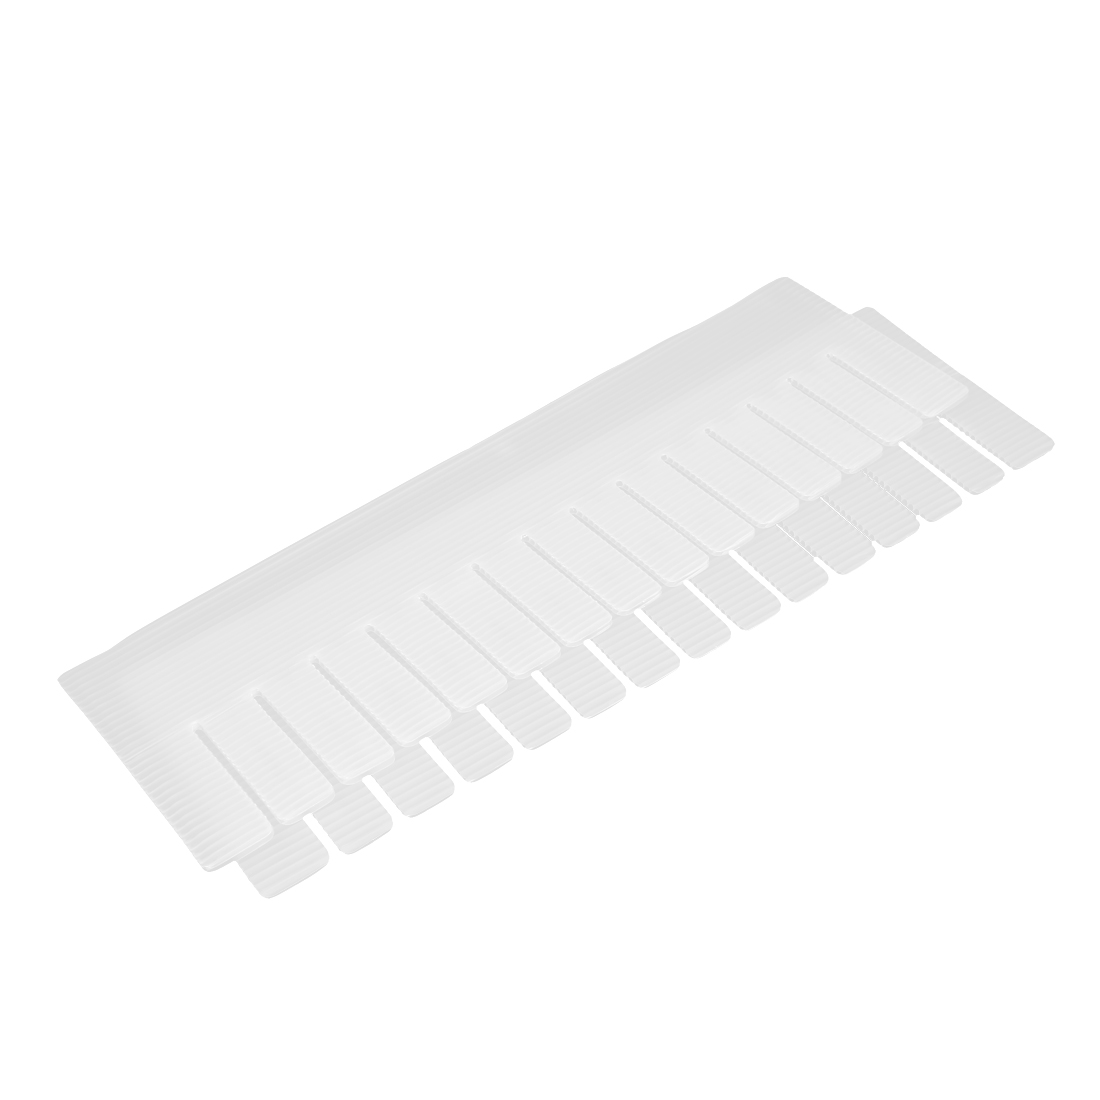 2pcs 42.5cm x 13cm White Plastic Drawer Divider Closet Box Divide Board Plates